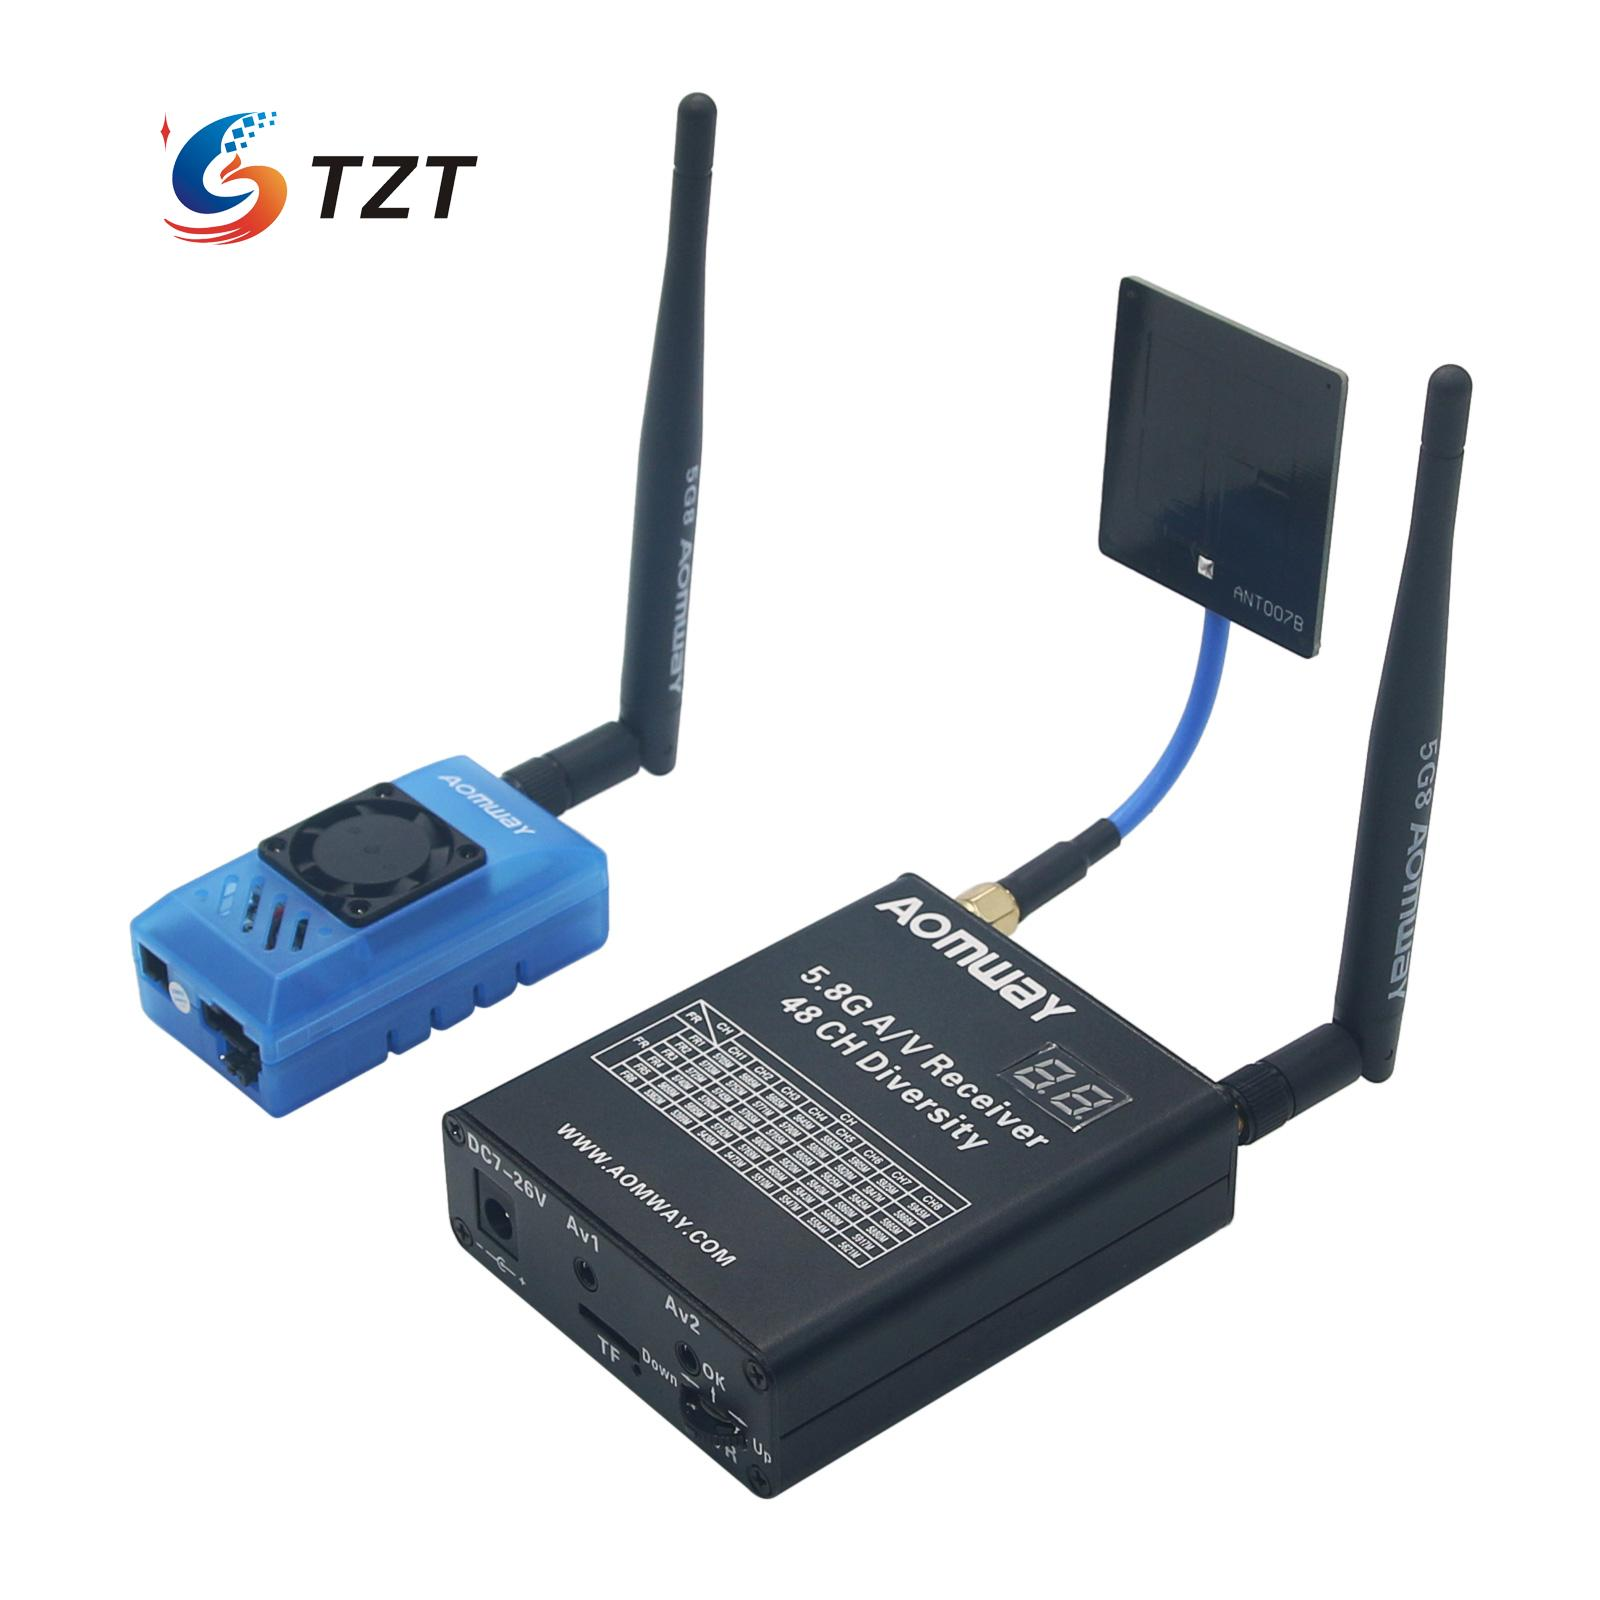 Aomway 5.8G A/V Receiver 48 CH FPV Telemetry Diversity DVR +AOMWAY 5.8G 32CH 1000mw TX Transmitter Camera Kit hot new aomway rx006 dvr 5 8g 48ch diversity raceband a v receiver with built in video recorder